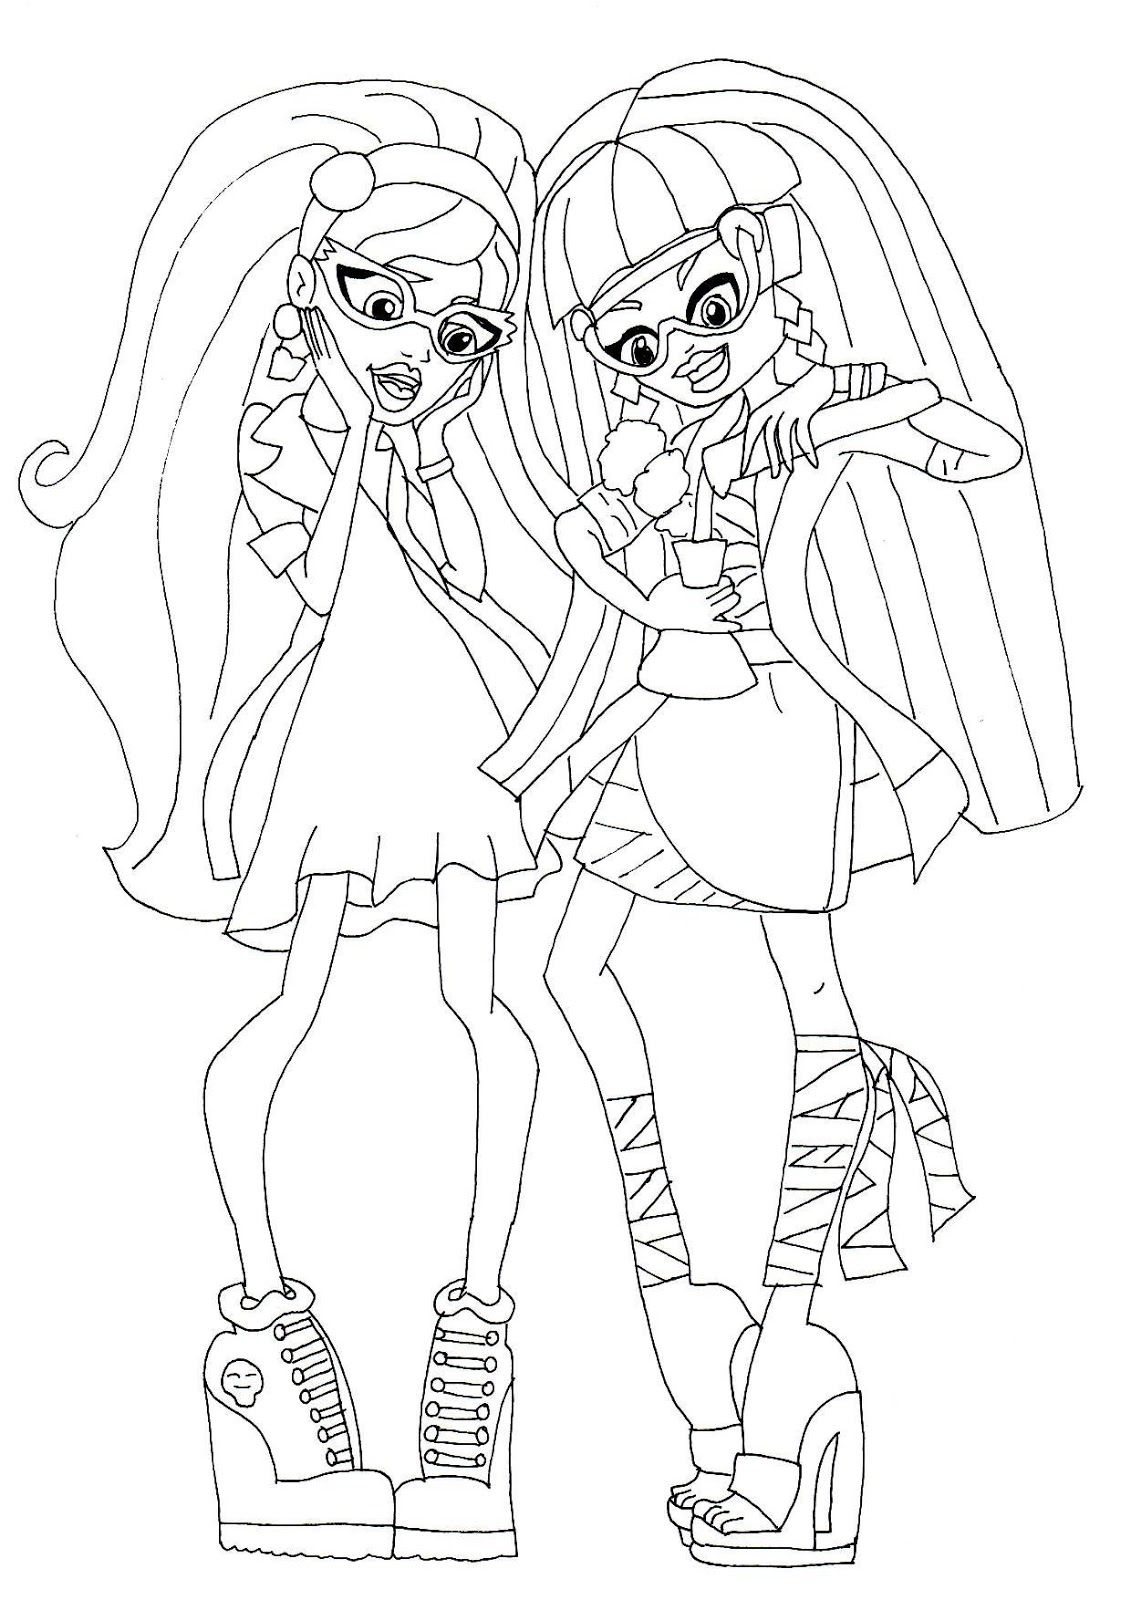 Cleo Amp Ghoulia Mad Science Coloring Sheet